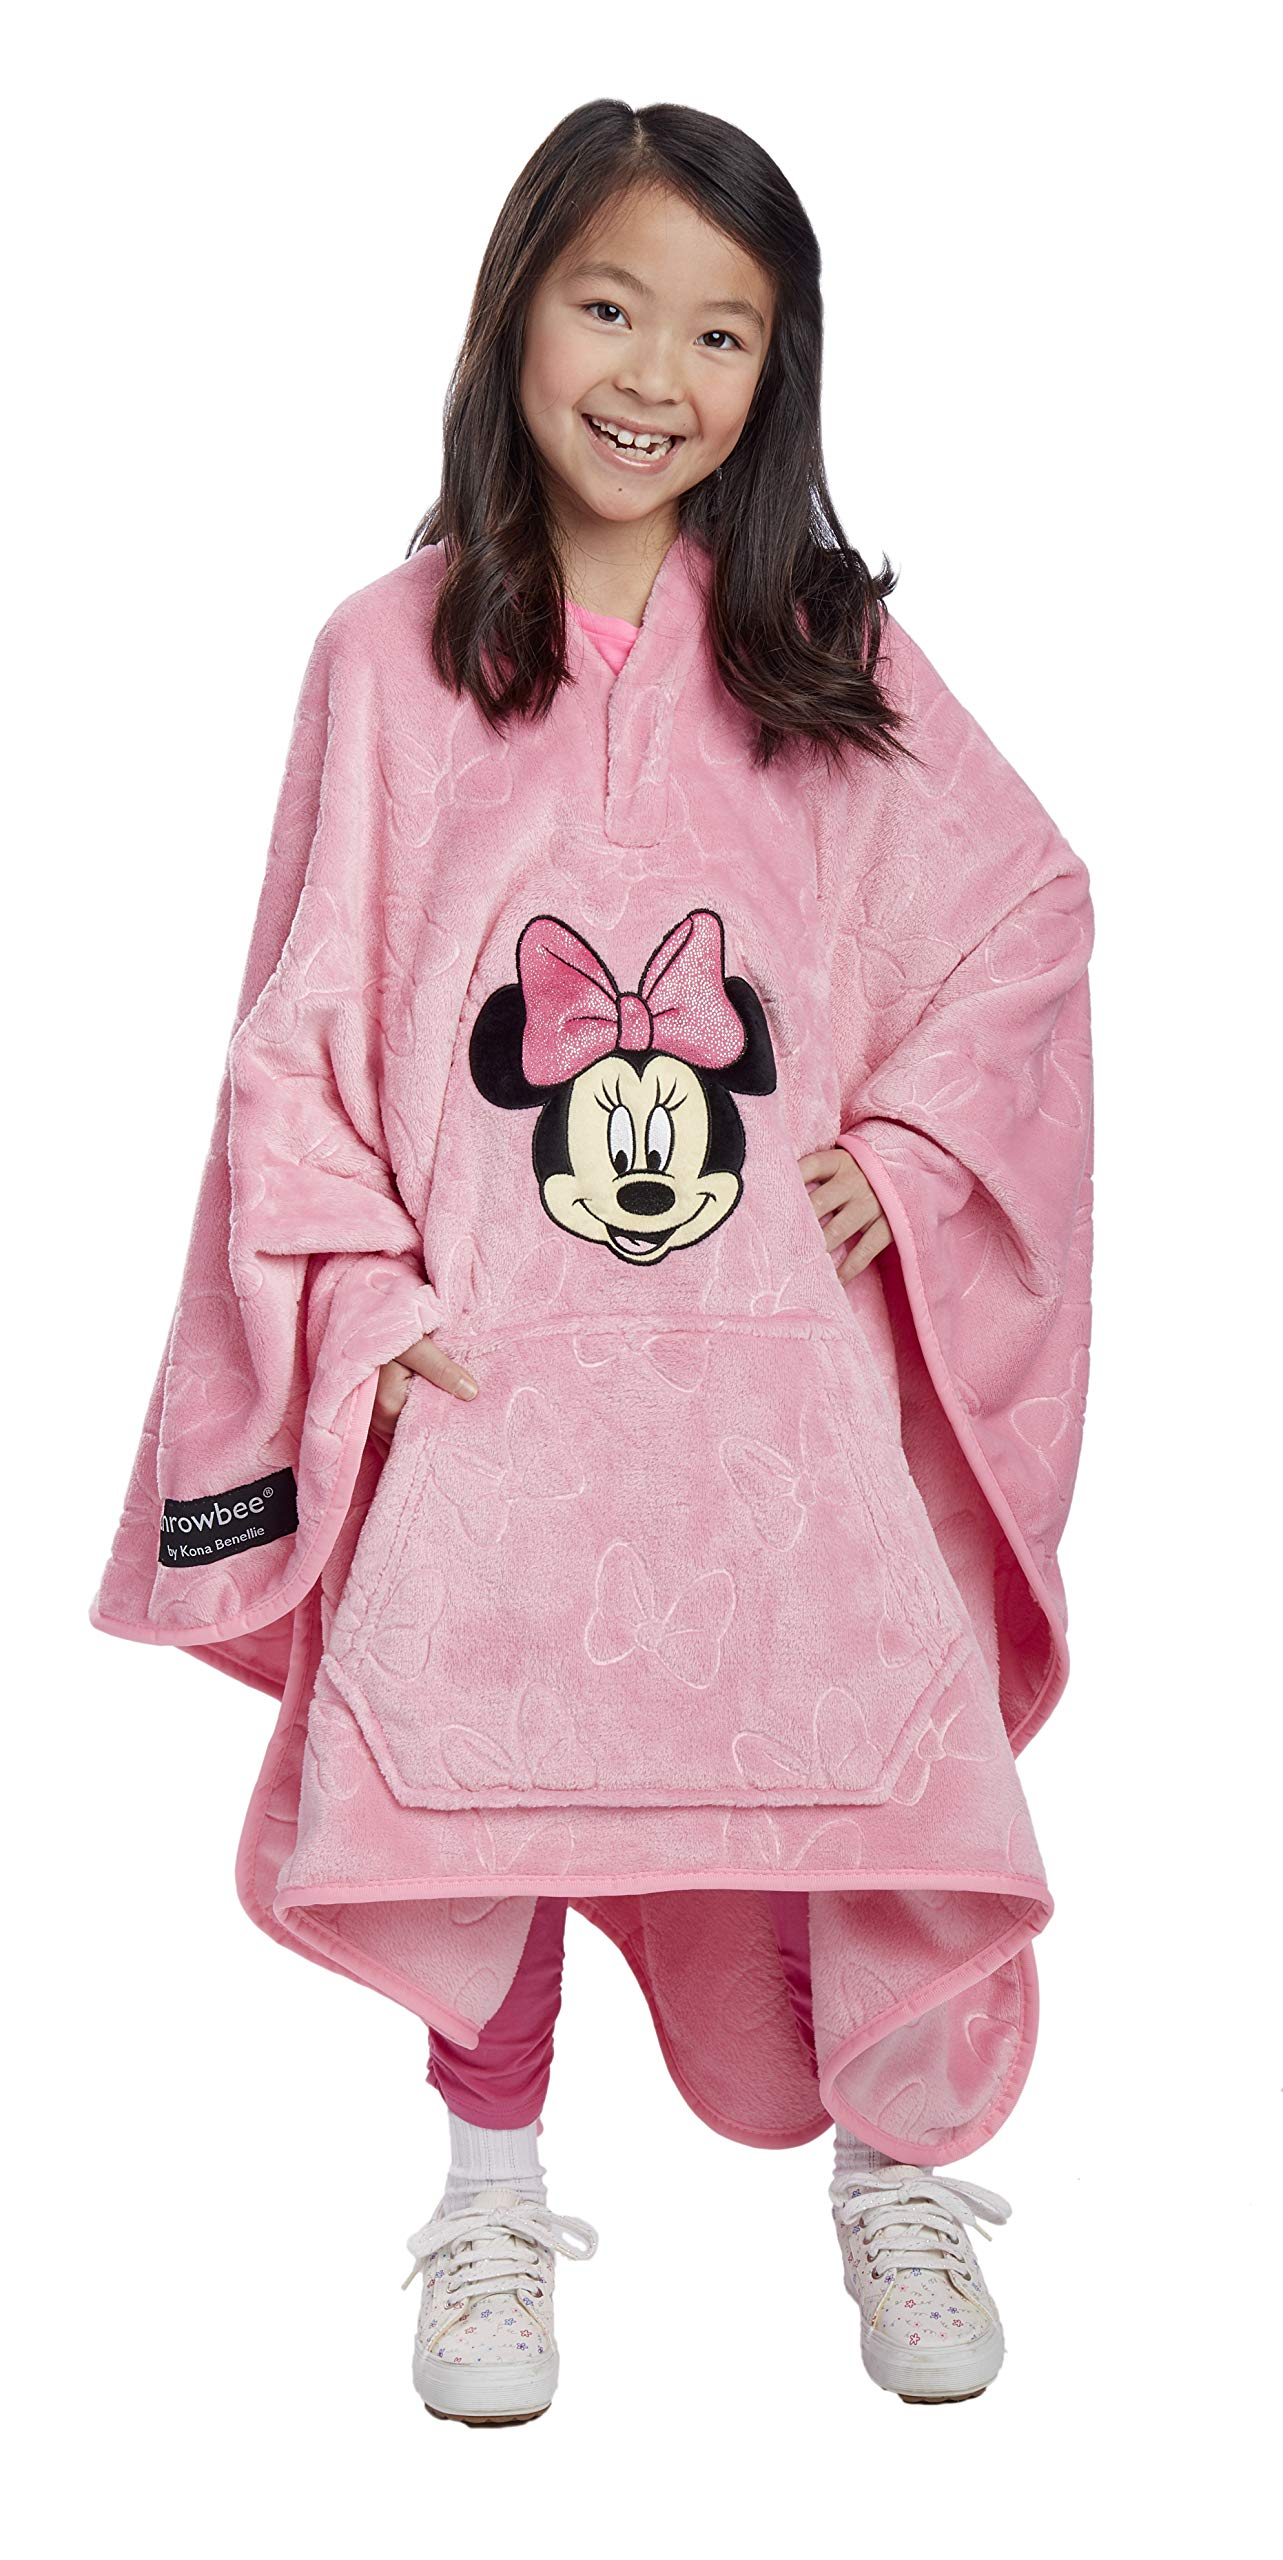 Jay Franco Disney Minnie Mouse Bows Throwbee - 2-in-1 Wearable Kids Plush Throw Blanket Poncho - Fade Resistant Polyester, 50'' x 60'' - (Offical Disney Product) by Jay Franco